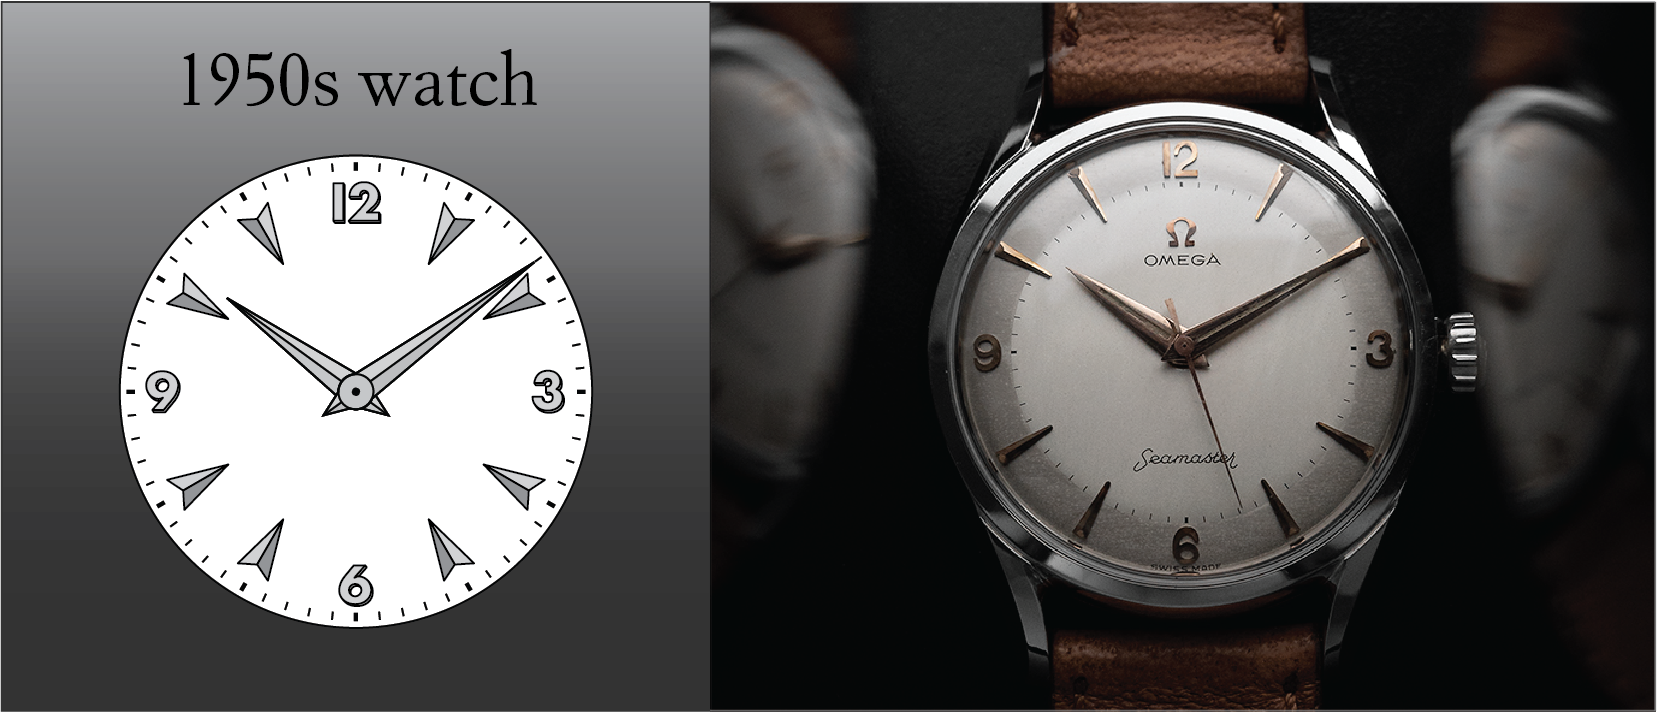 The Characteristic 1950s Fifties Watch - And the example an Omega Seamaster